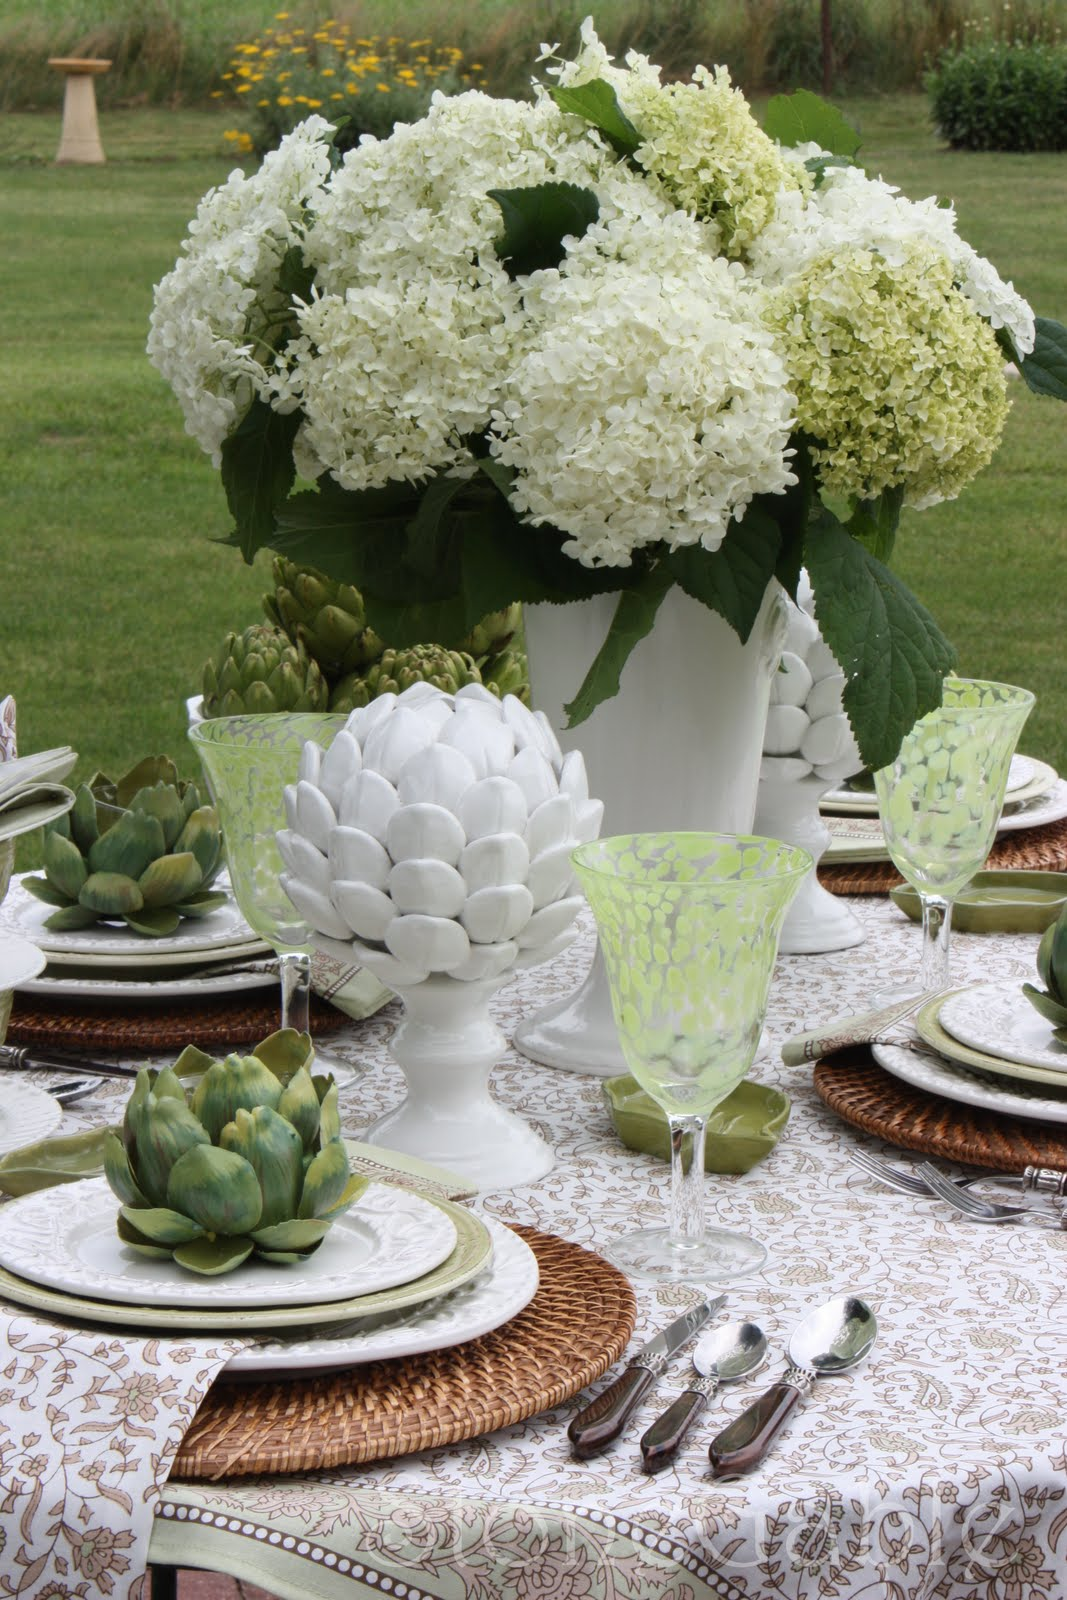 Stonegable Tablescapes